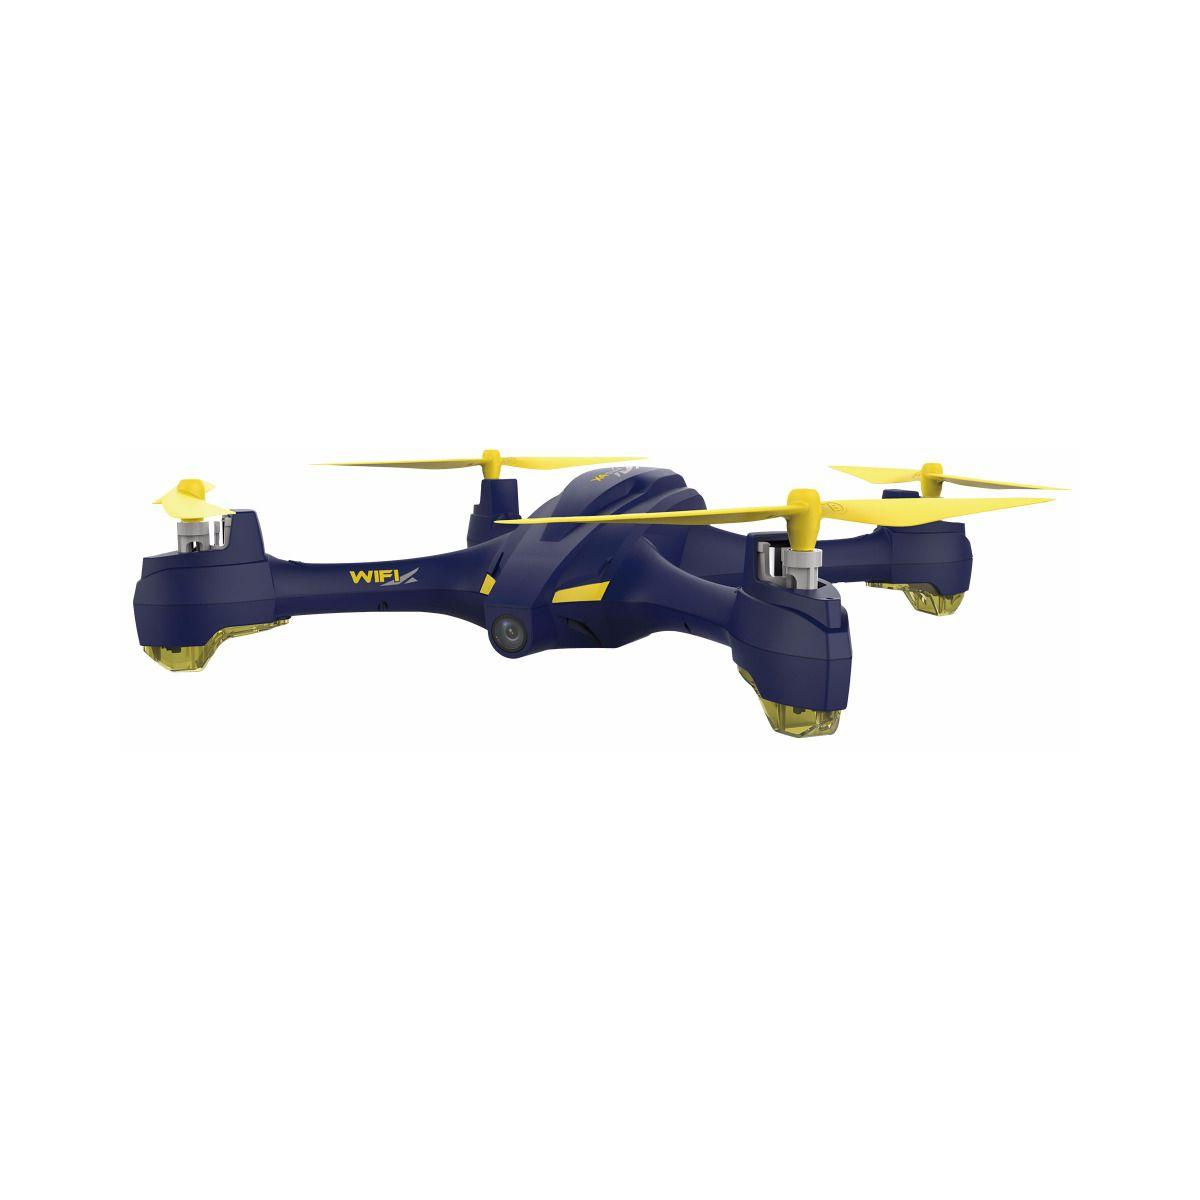 Drone hubsan h507a wifi x4 star pro - 5% de remise imm�diate avec le code : deal5 (photo)